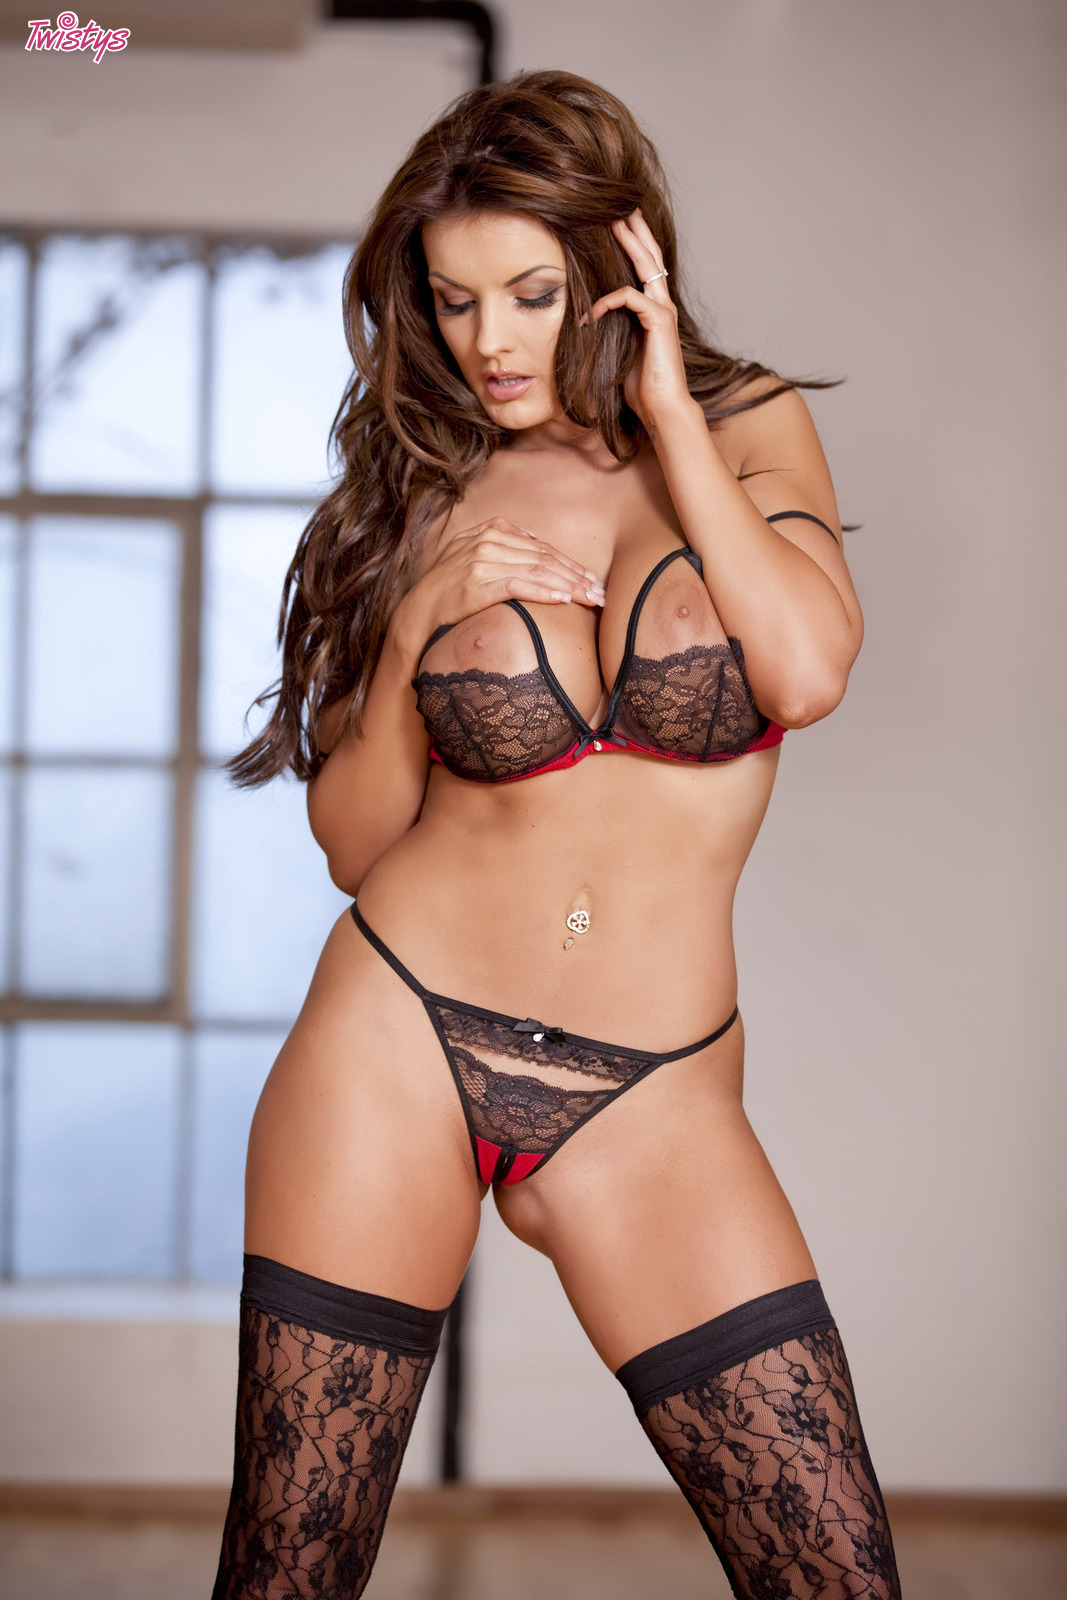 big-tits-in-sexy-lingerie